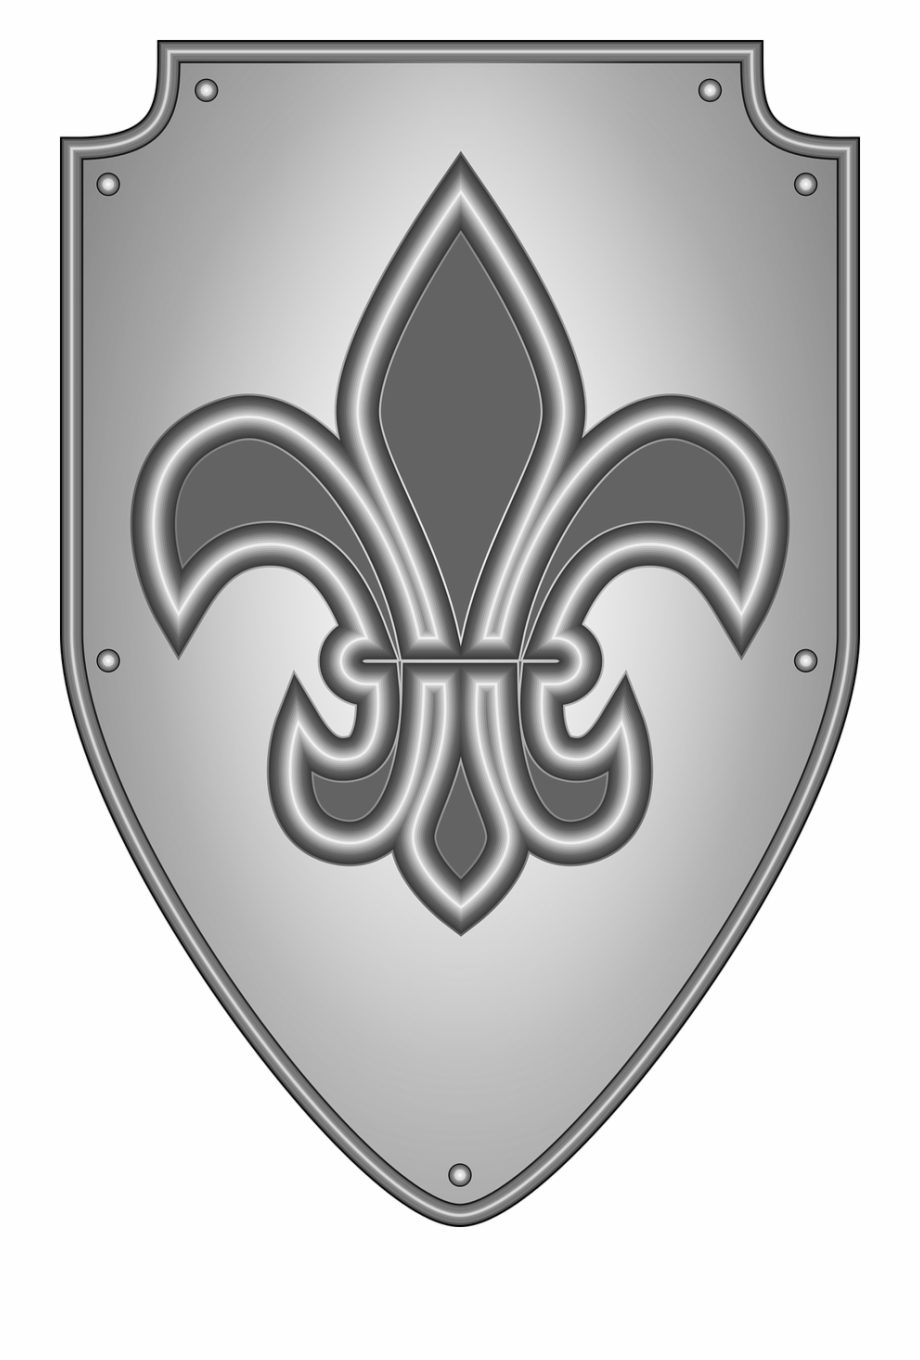 Arm in armor with dagger crest clipart transparent banner black and white library Heraldry Knight Medieval Shield Png Image - Medieval Shield Clipart ... banner black and white library